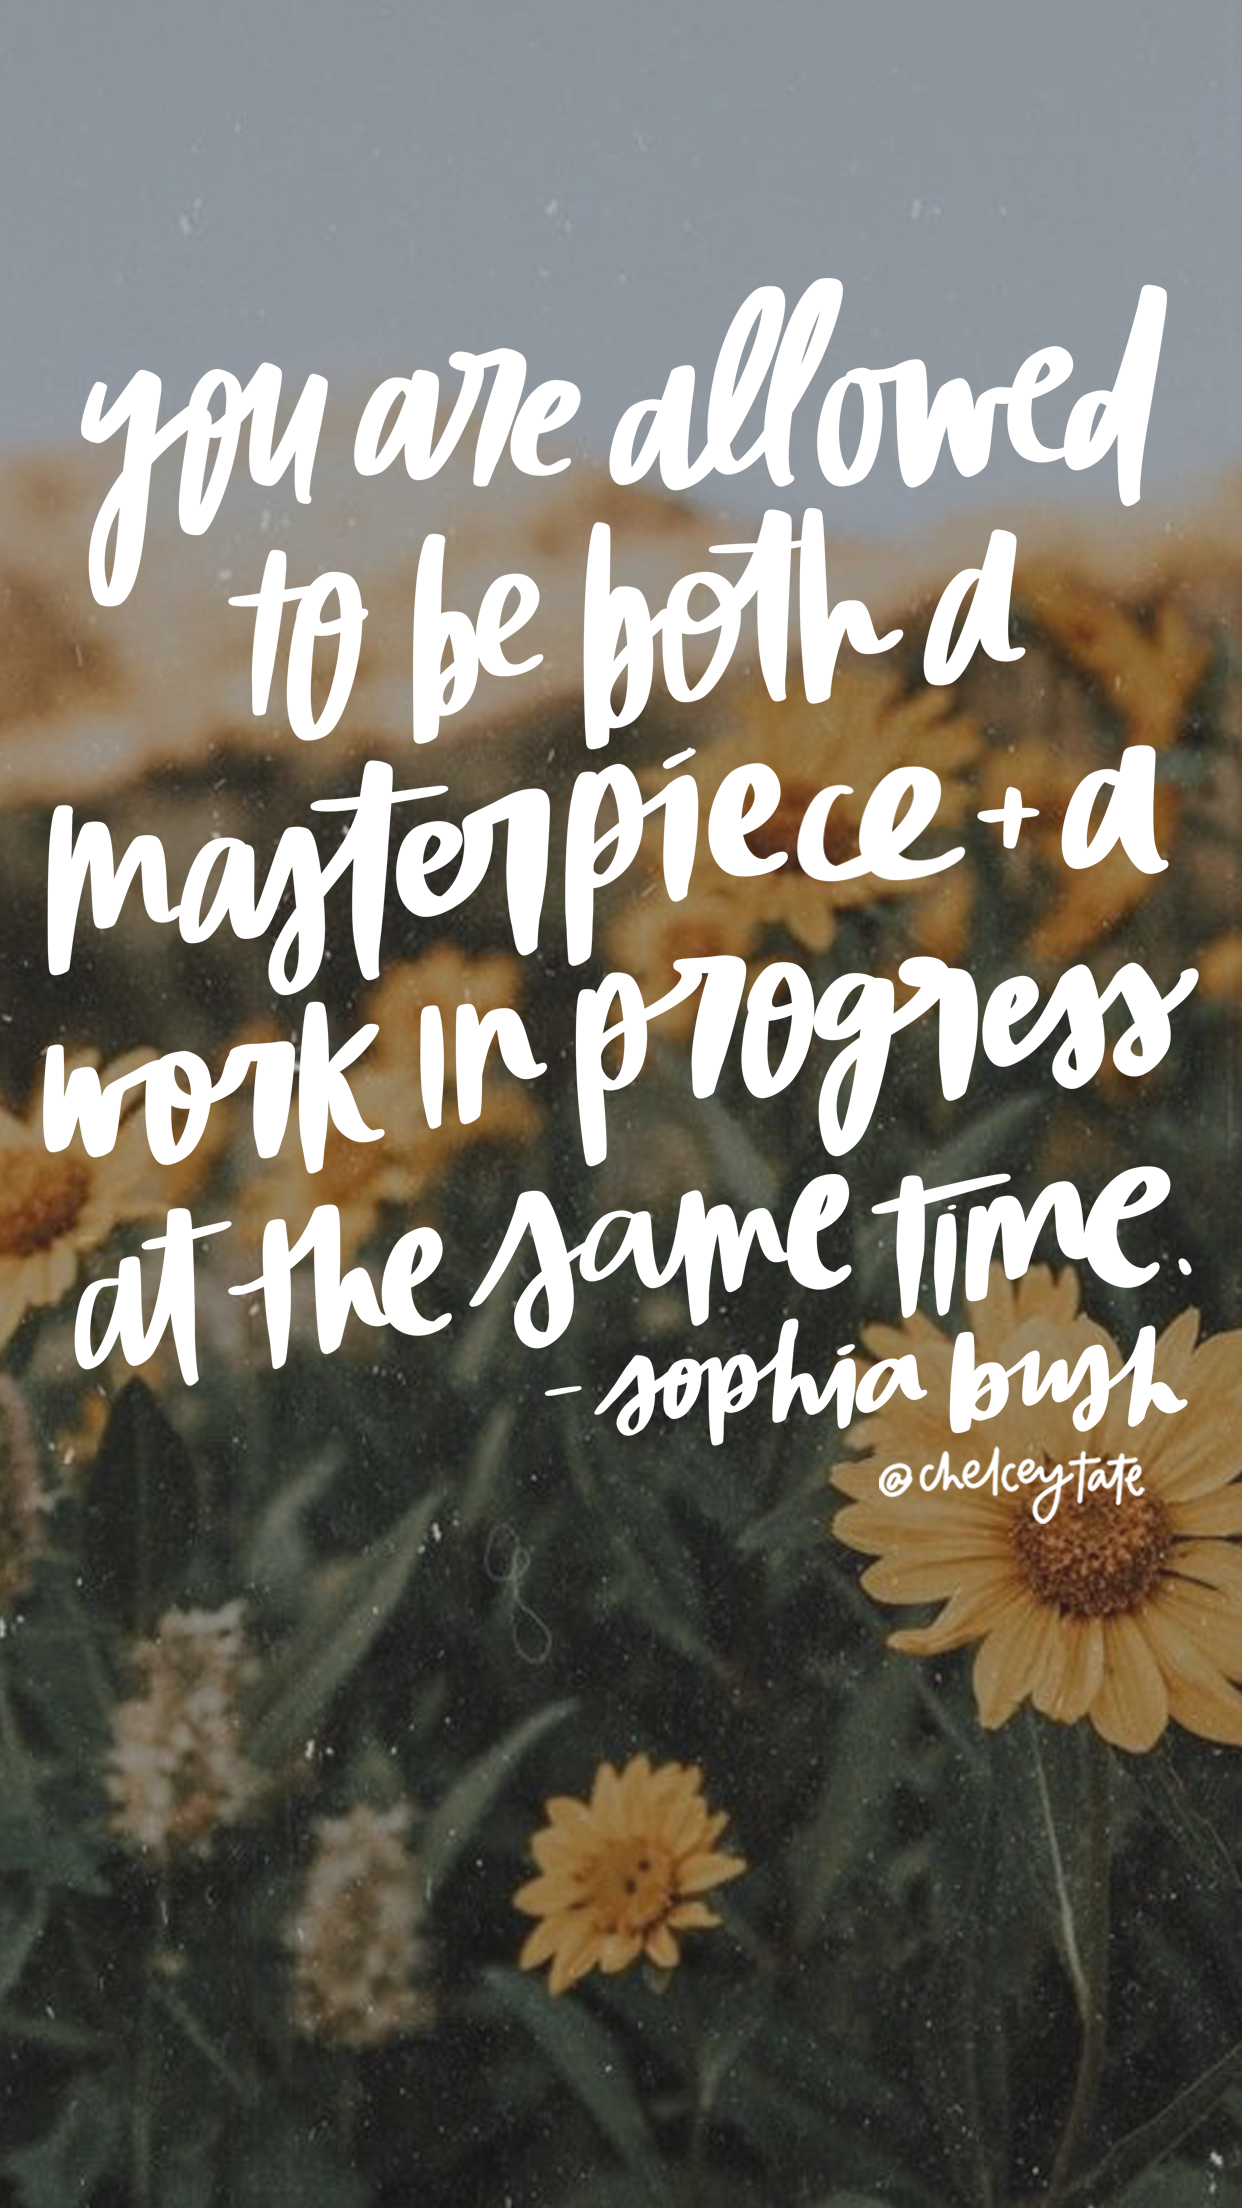 You Are Allowed To Be A Masterpiece And A Work In Progress At The Same Time - Sophia Bush Daily Love Note by Chelcey Tate via chelceytate.com